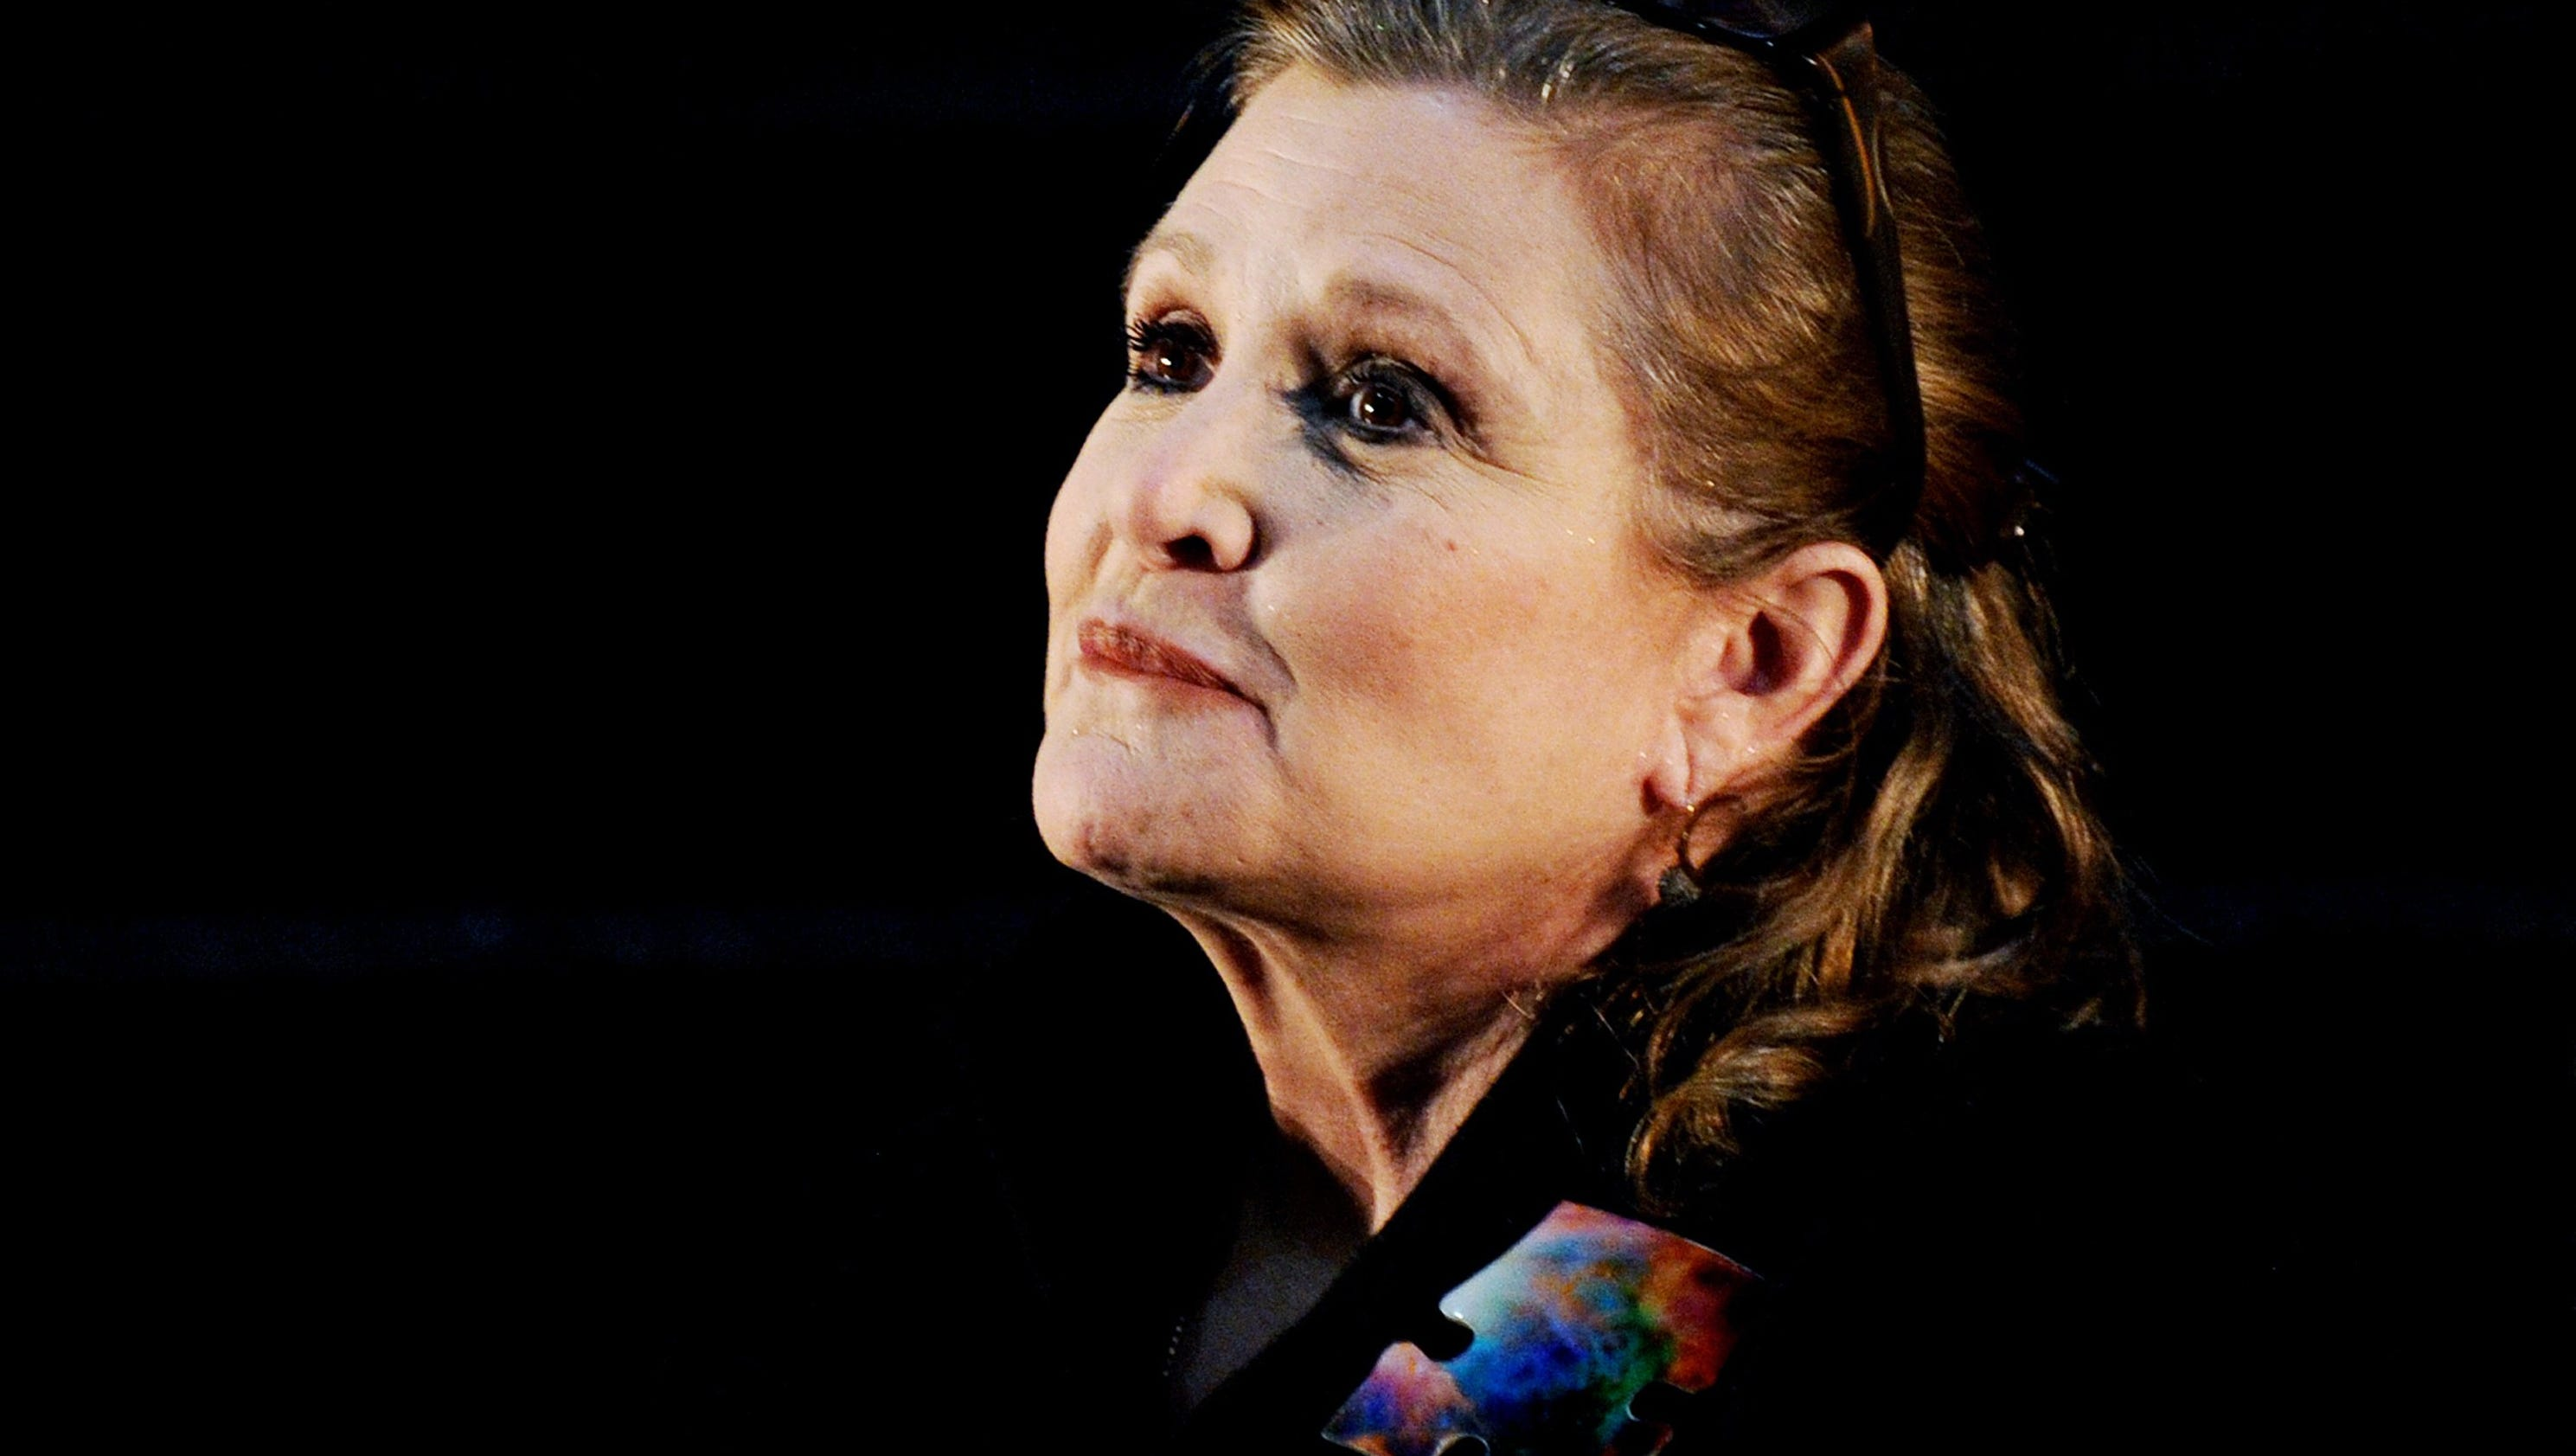 Heroin, cocaine found in Carrie Fisher's system, says autopsy report